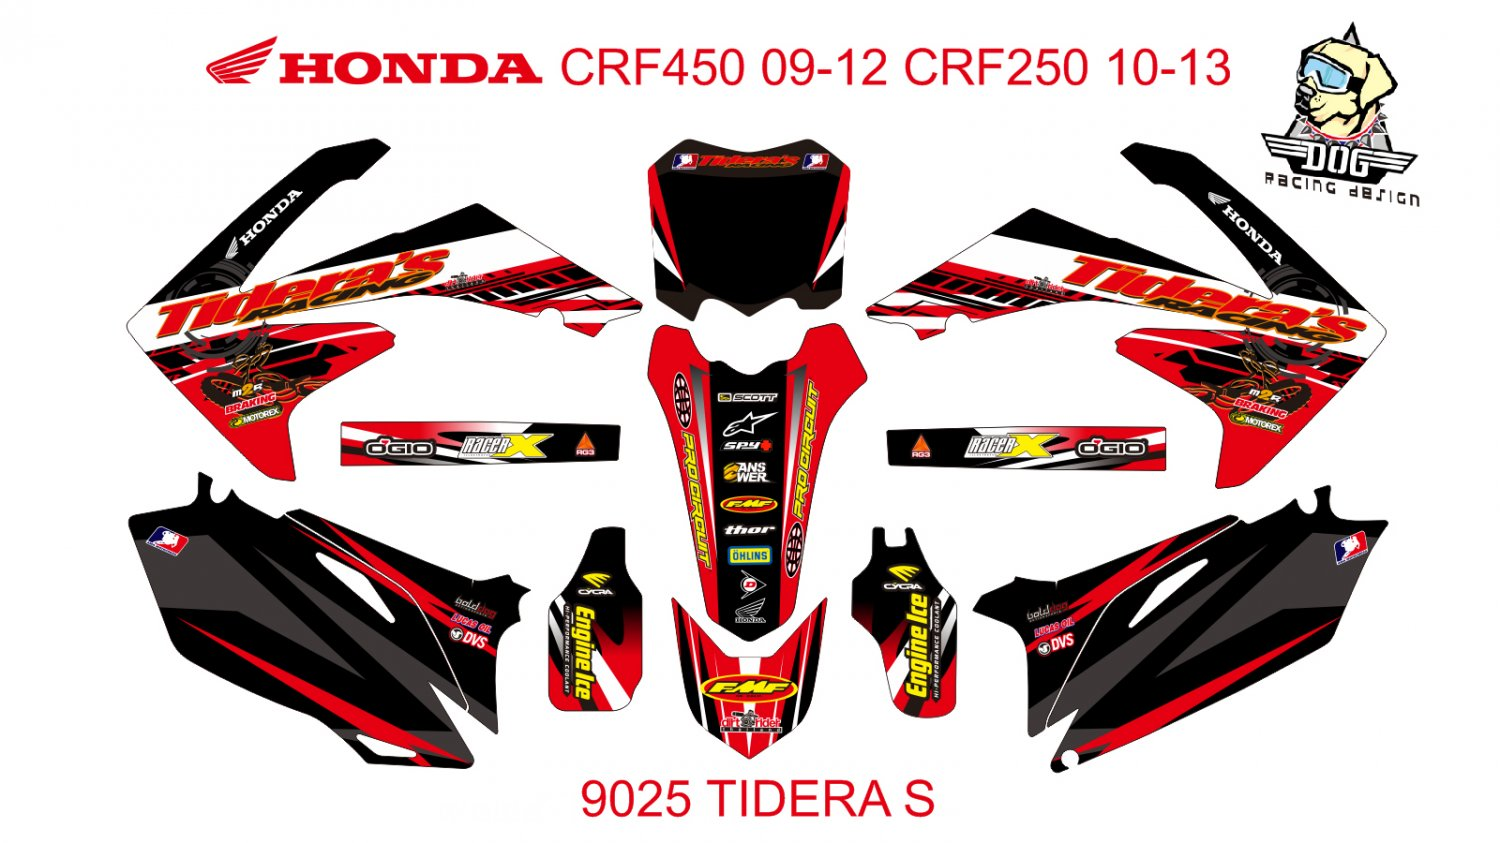 HONDA CRF 450 2009-2012 CRF 250 2010-2013 DECAL KIT CODE.9025